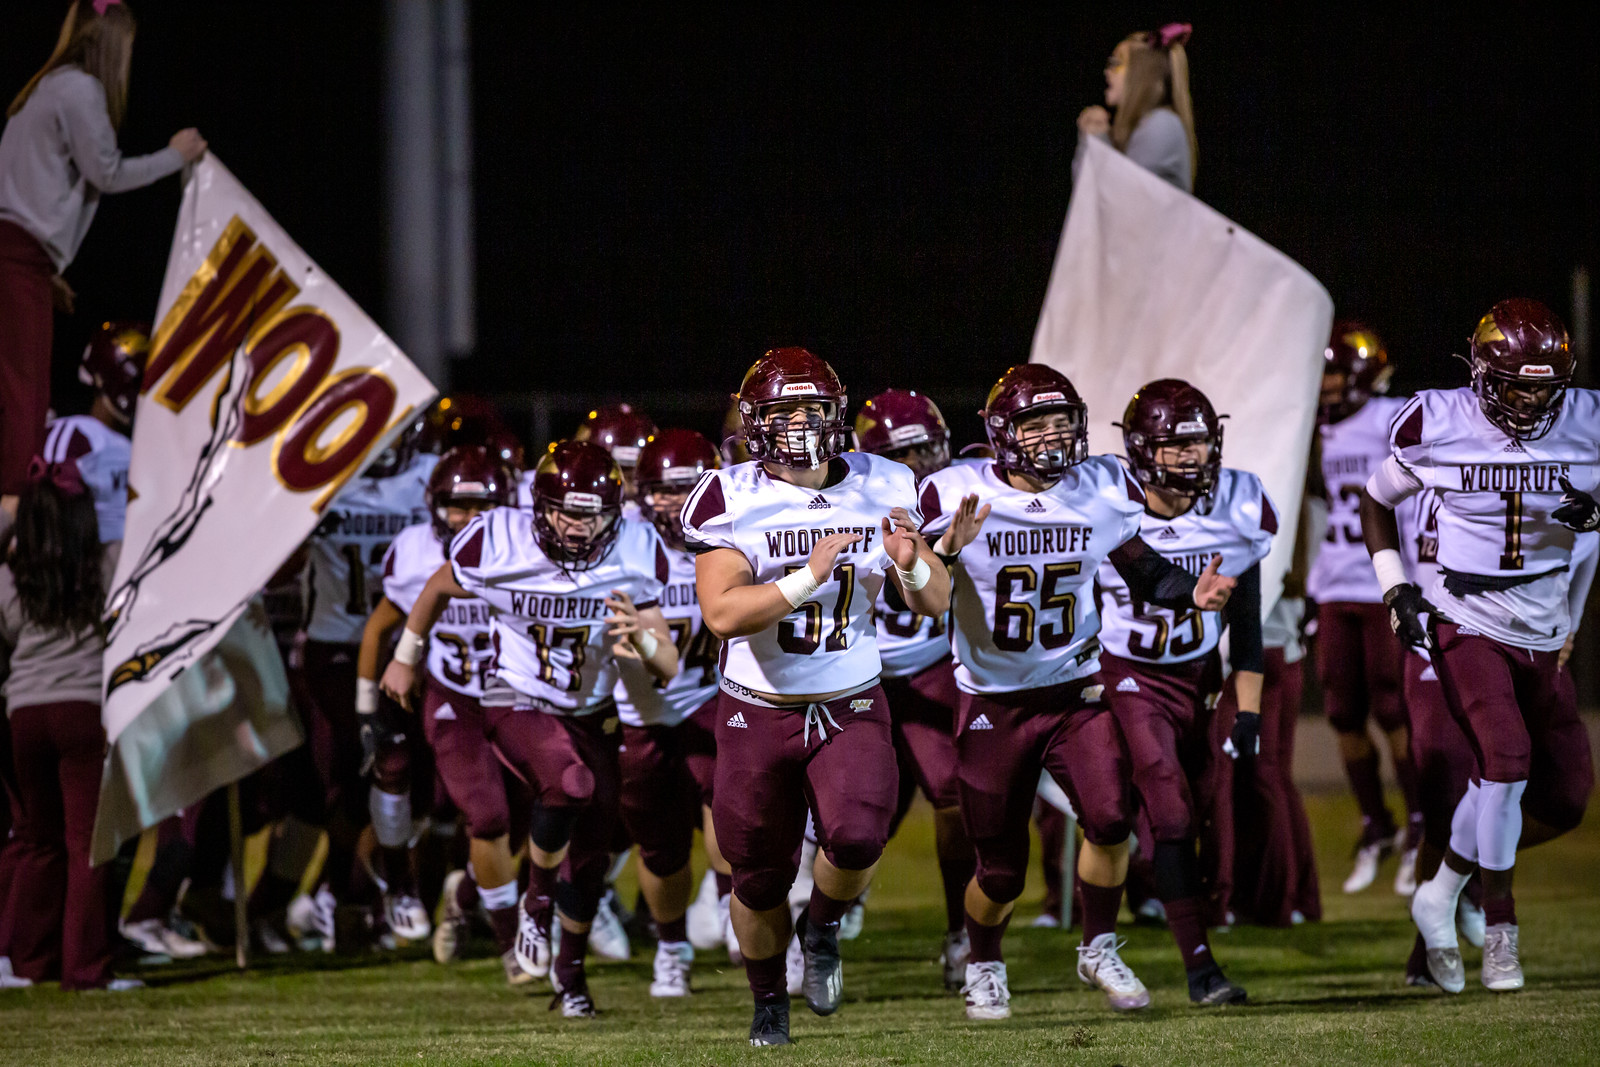 Challenging Season Comes to an End for Woodruff Football